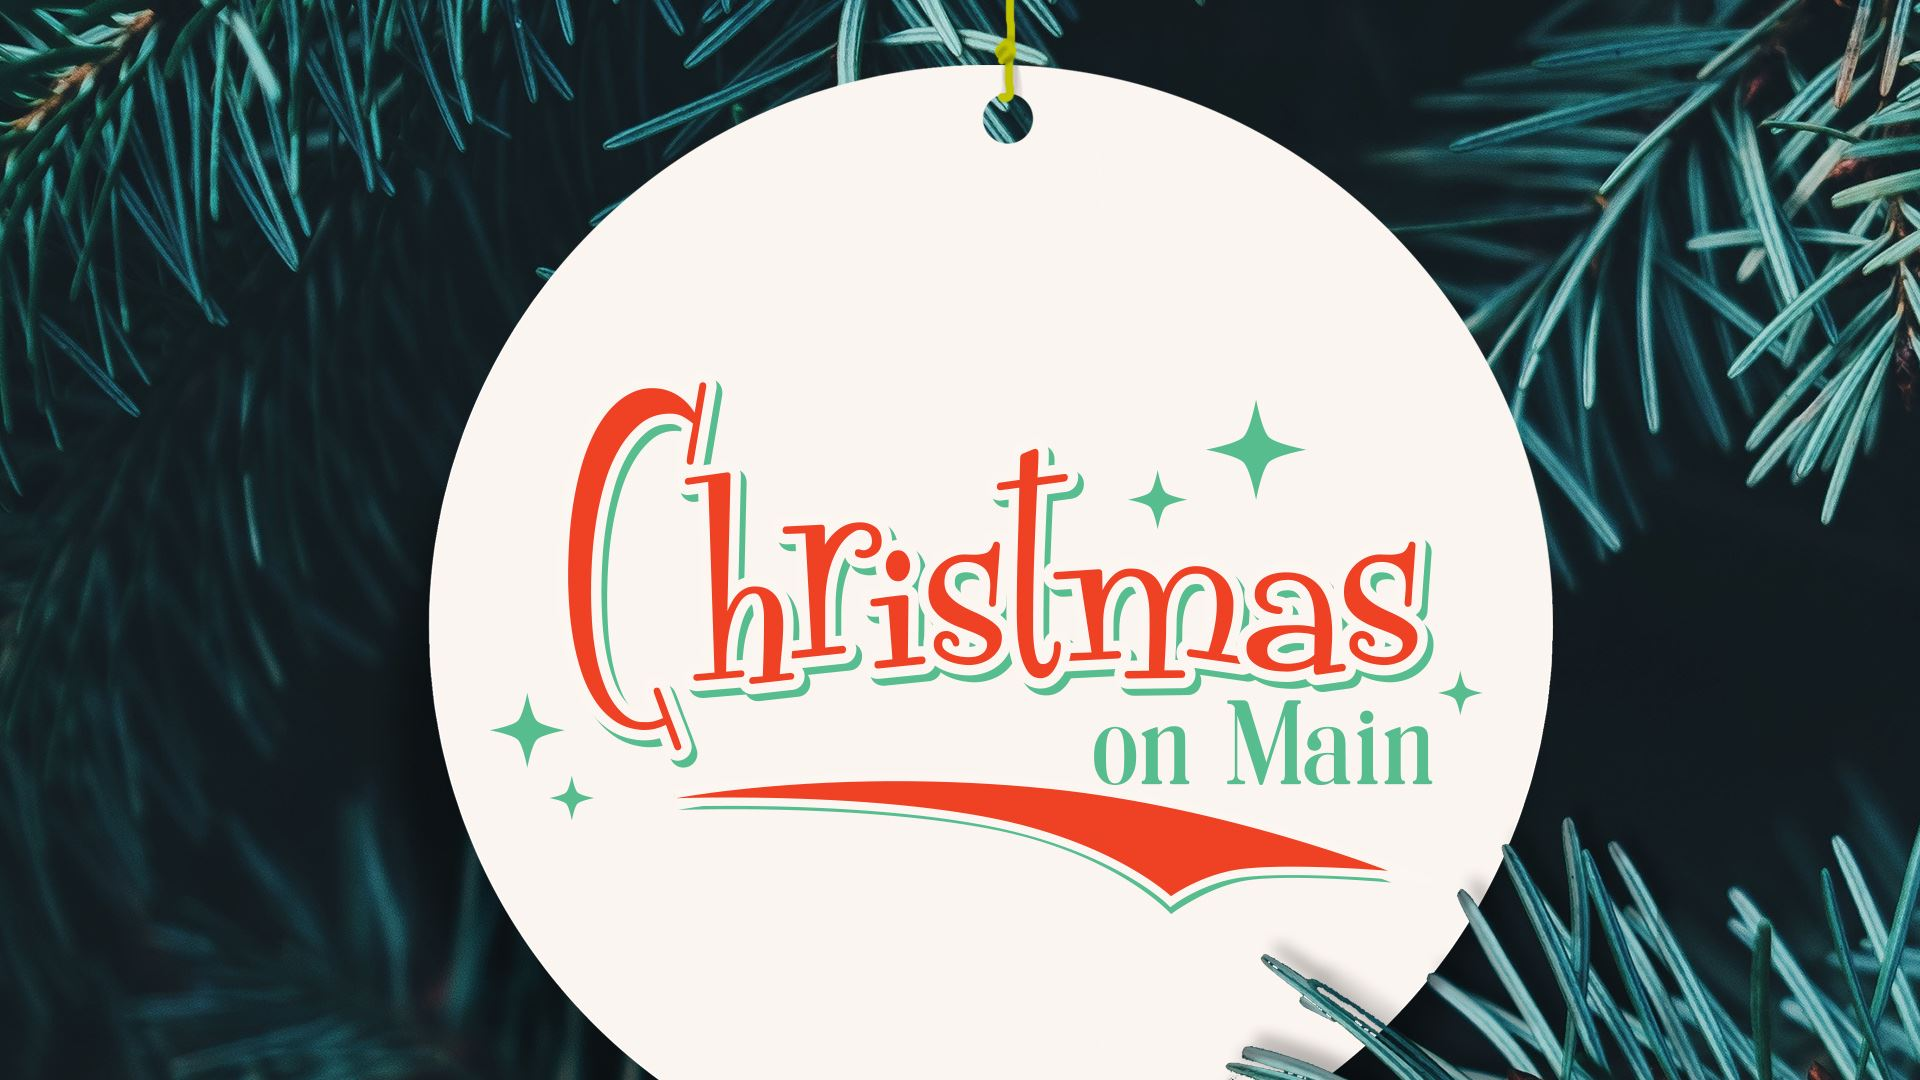 Christmas On Main FB Event Cover